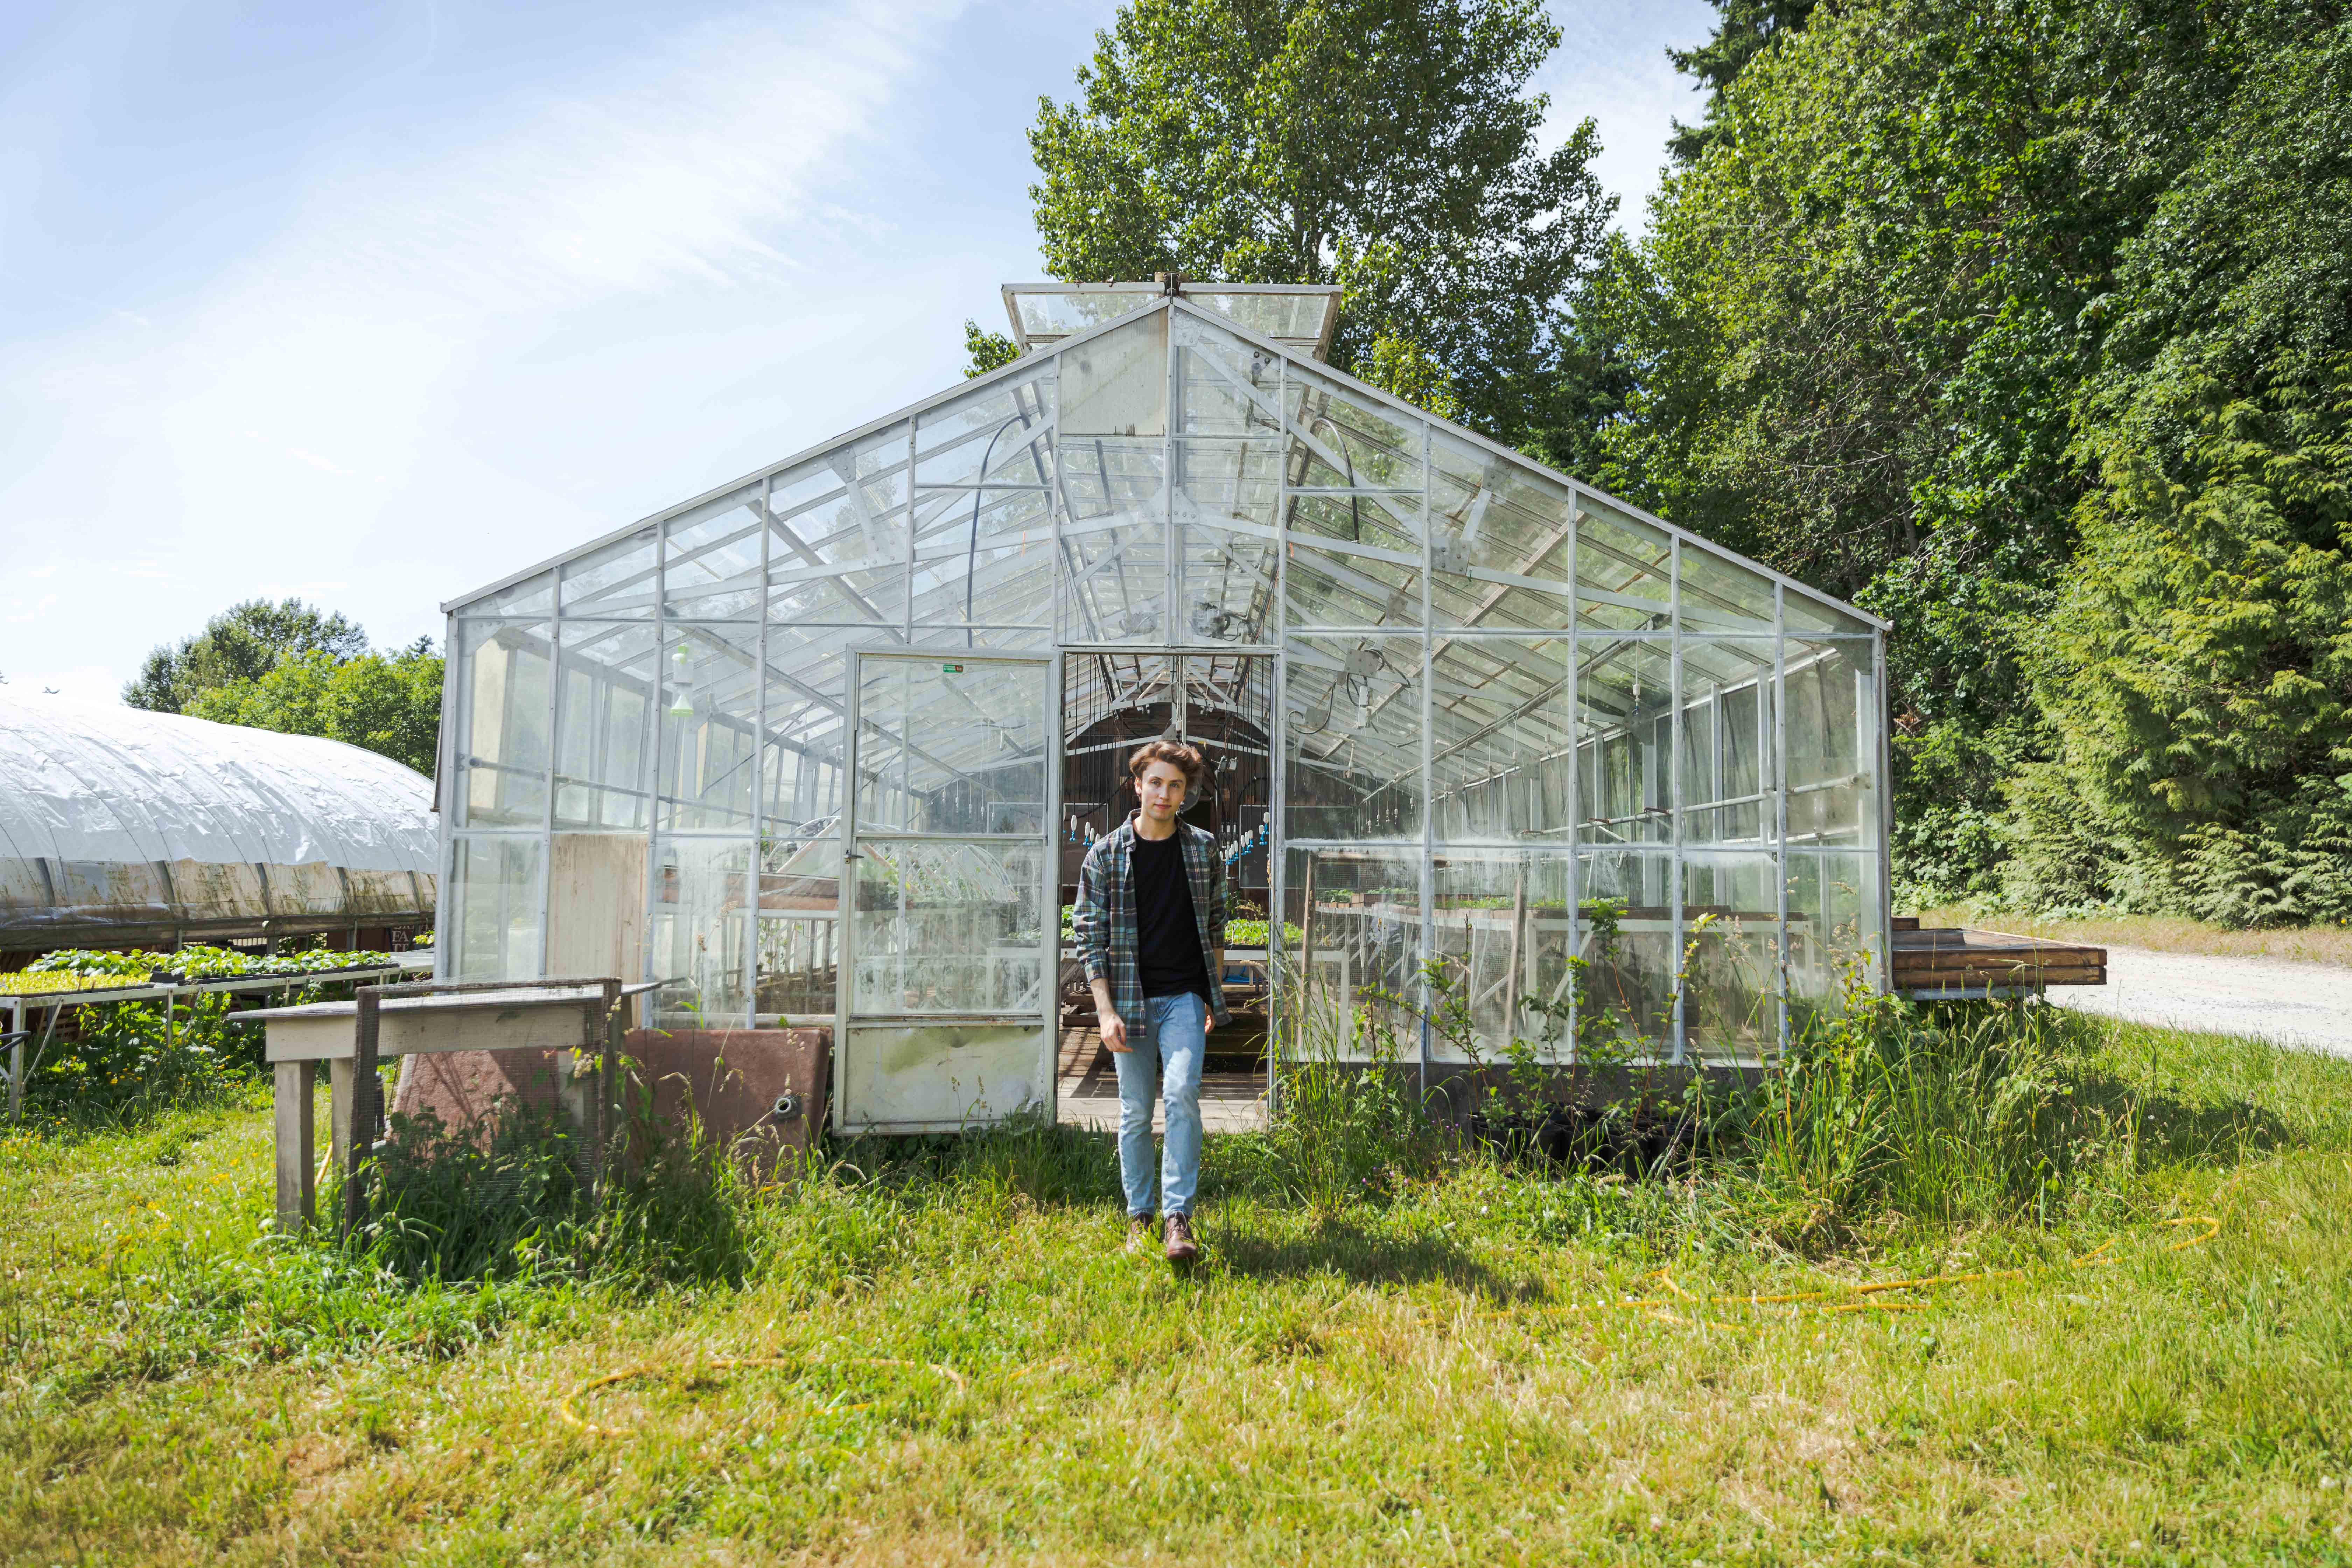 Jordan walking out of a greenhouse like its a runway